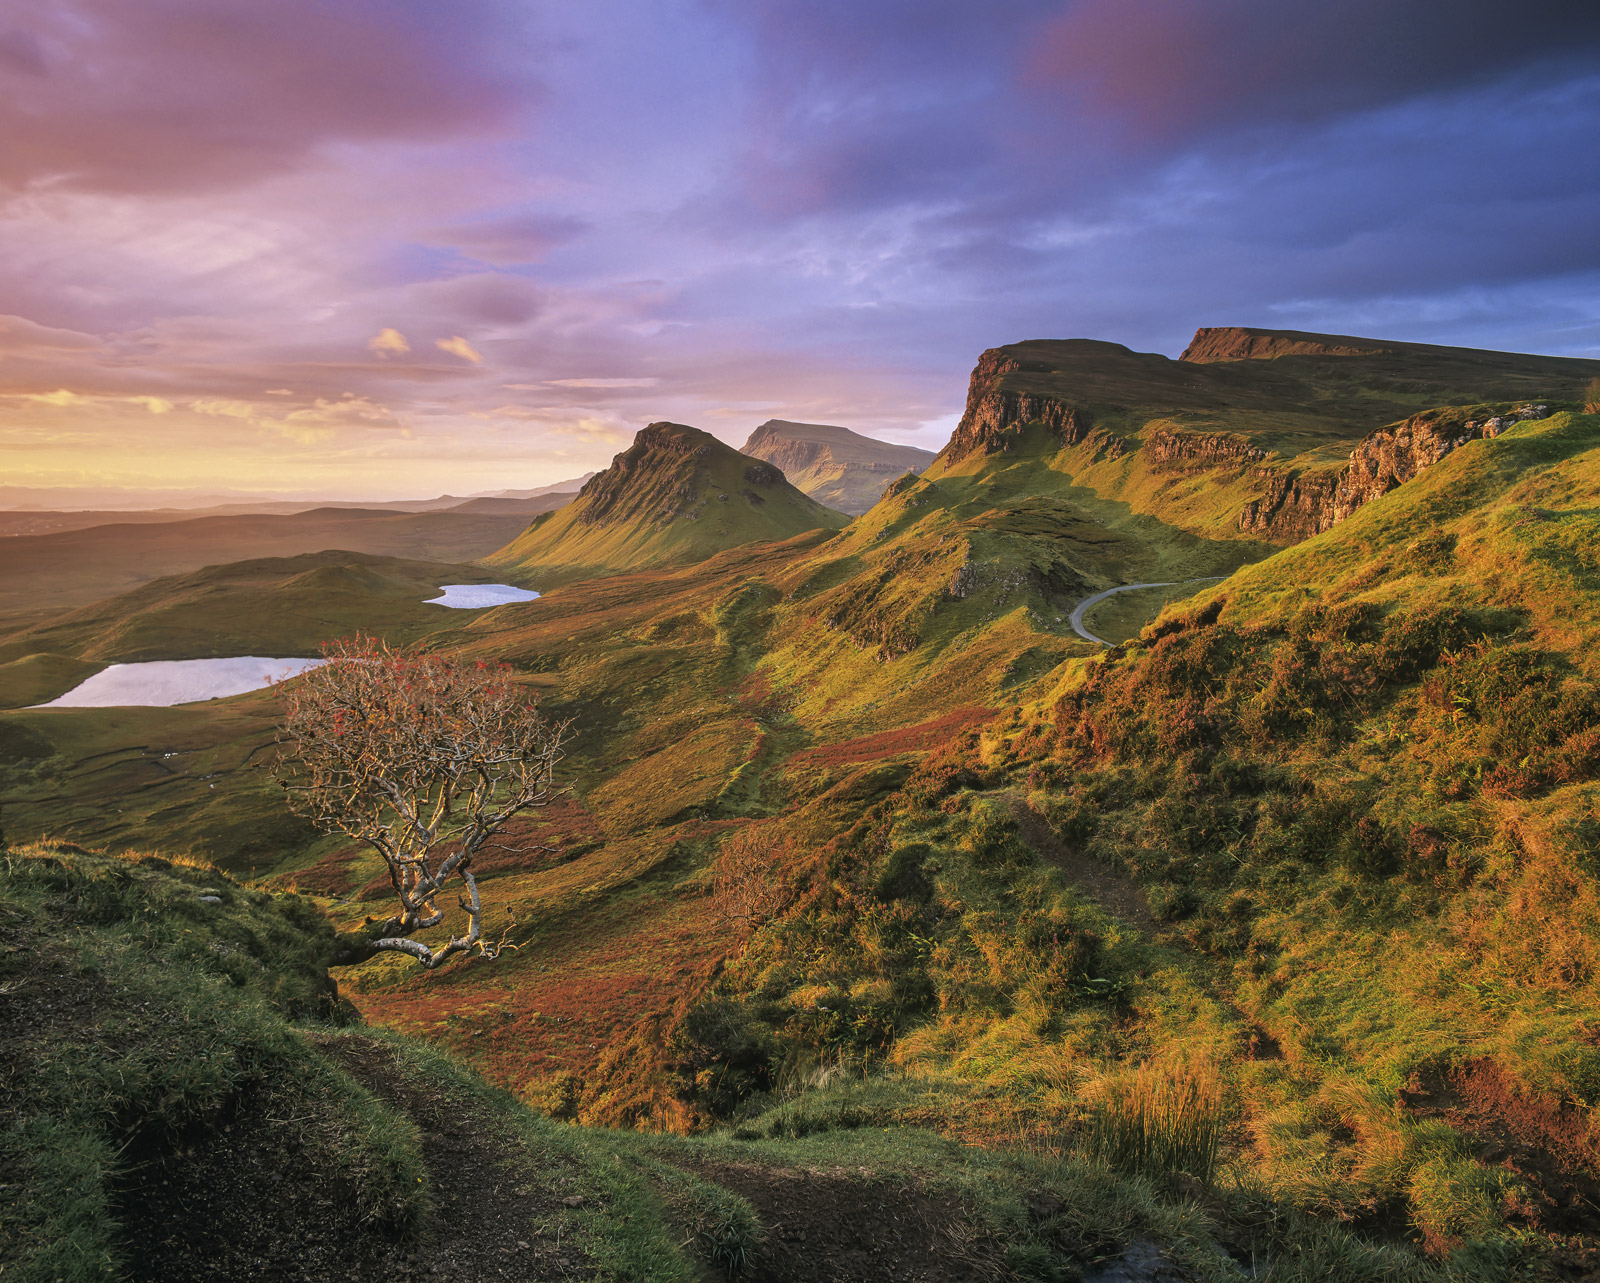 Taken on a recent workshop I was running, this turned out to be just about the most magnificent autumn sunrises at the Quiraing...